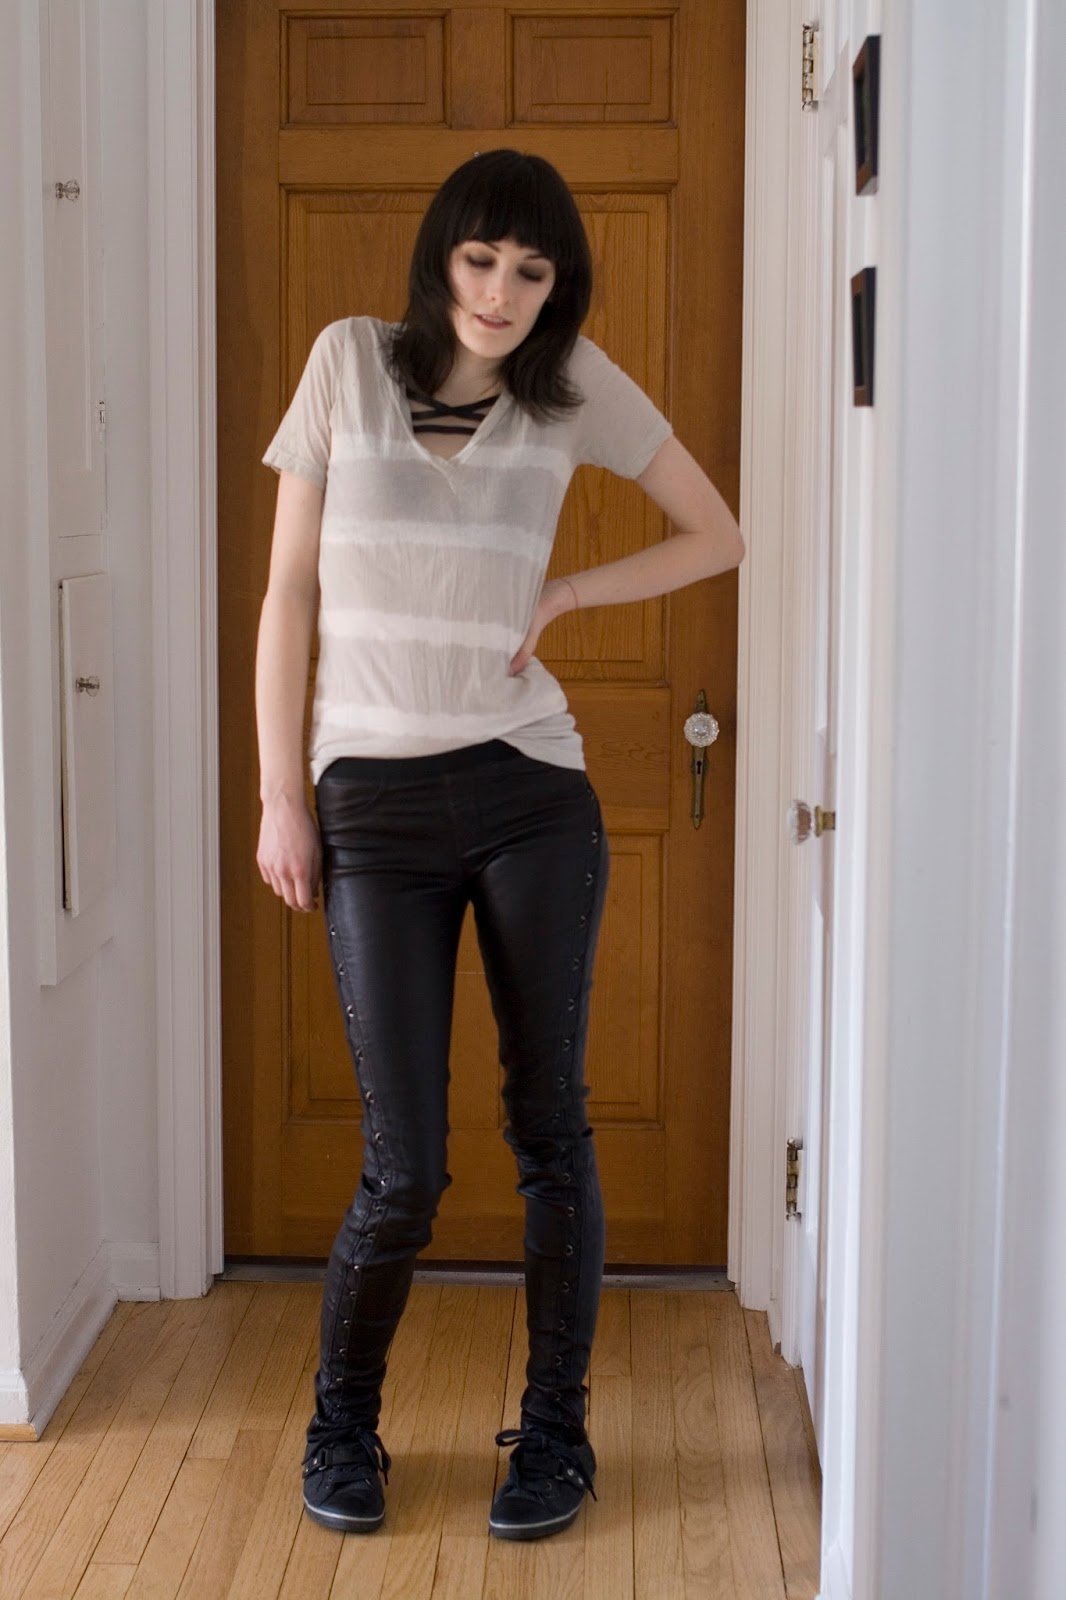 Bombasine.com-- Tee- J Crew/  Leggings- Helmut Lang / Shoes- Aldo / Pentagram bra- DIY, linked in the post